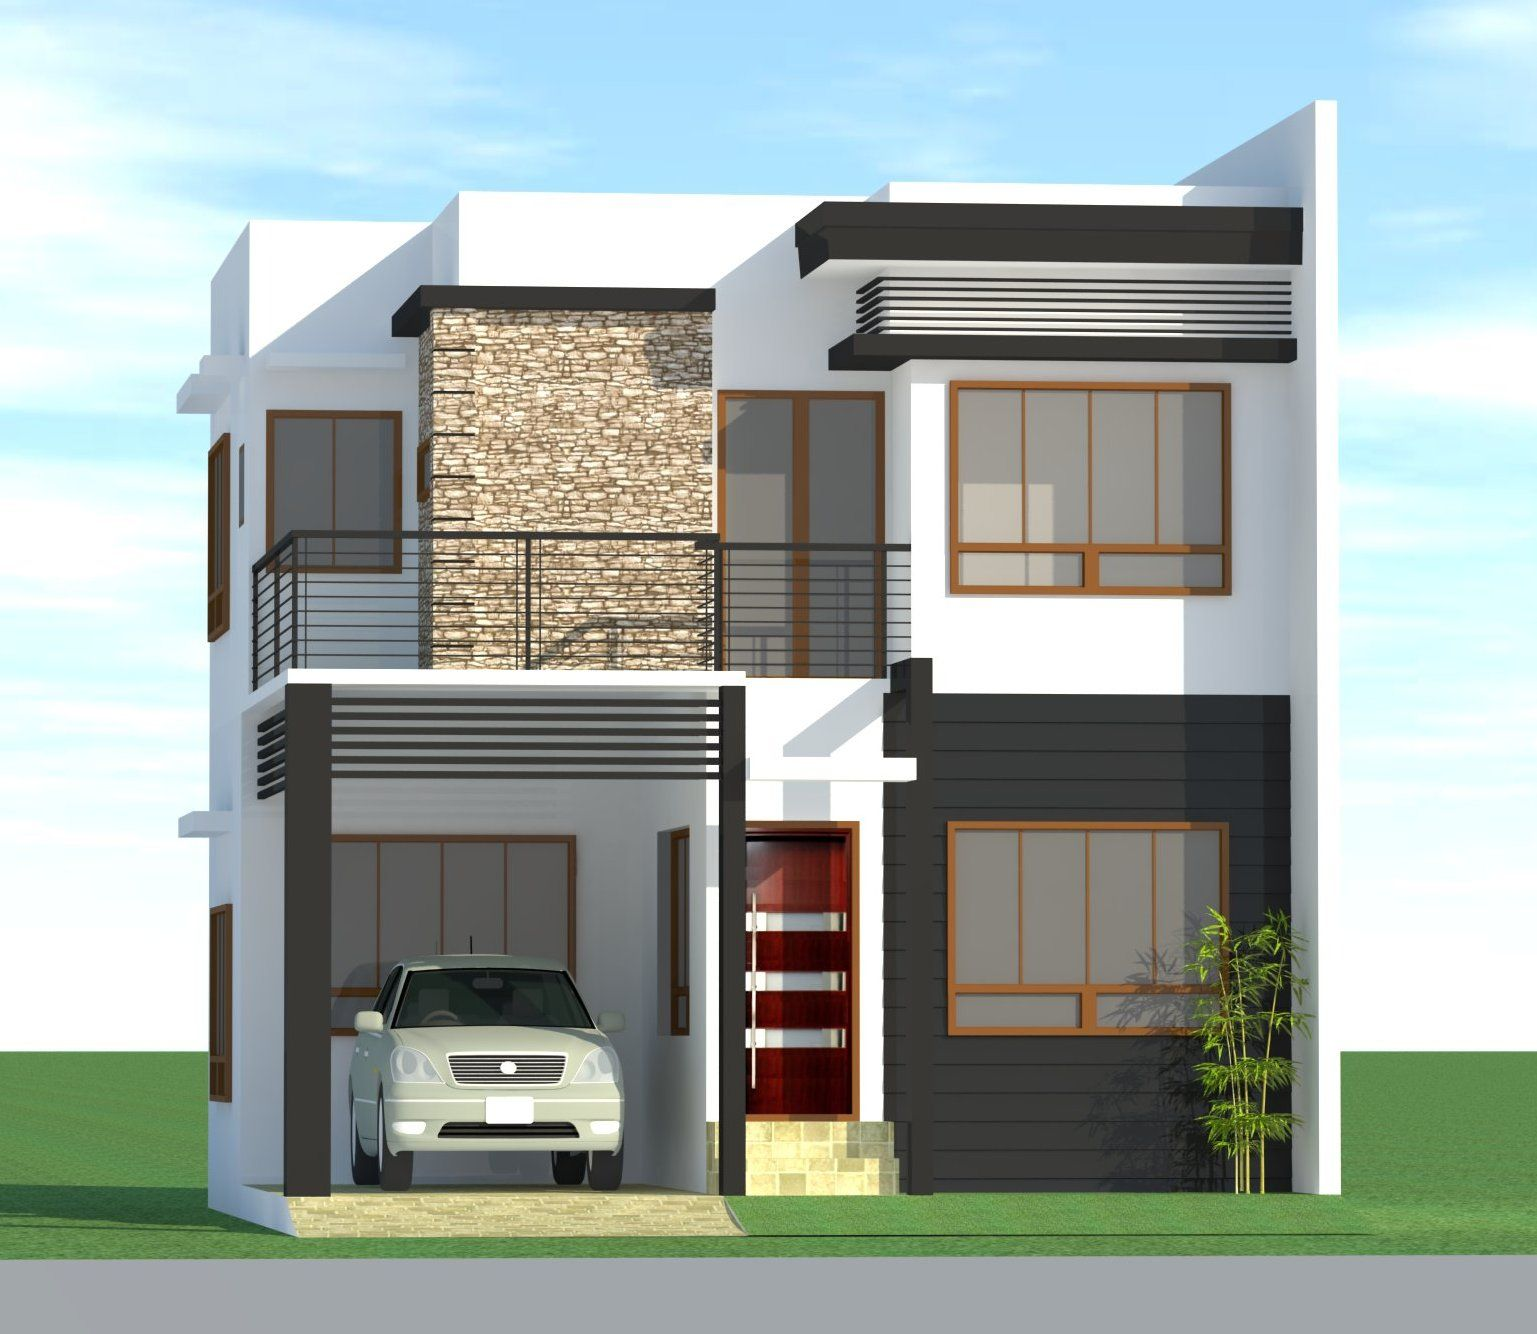 Philippines house design images 3 home design ideas Home exterior front design